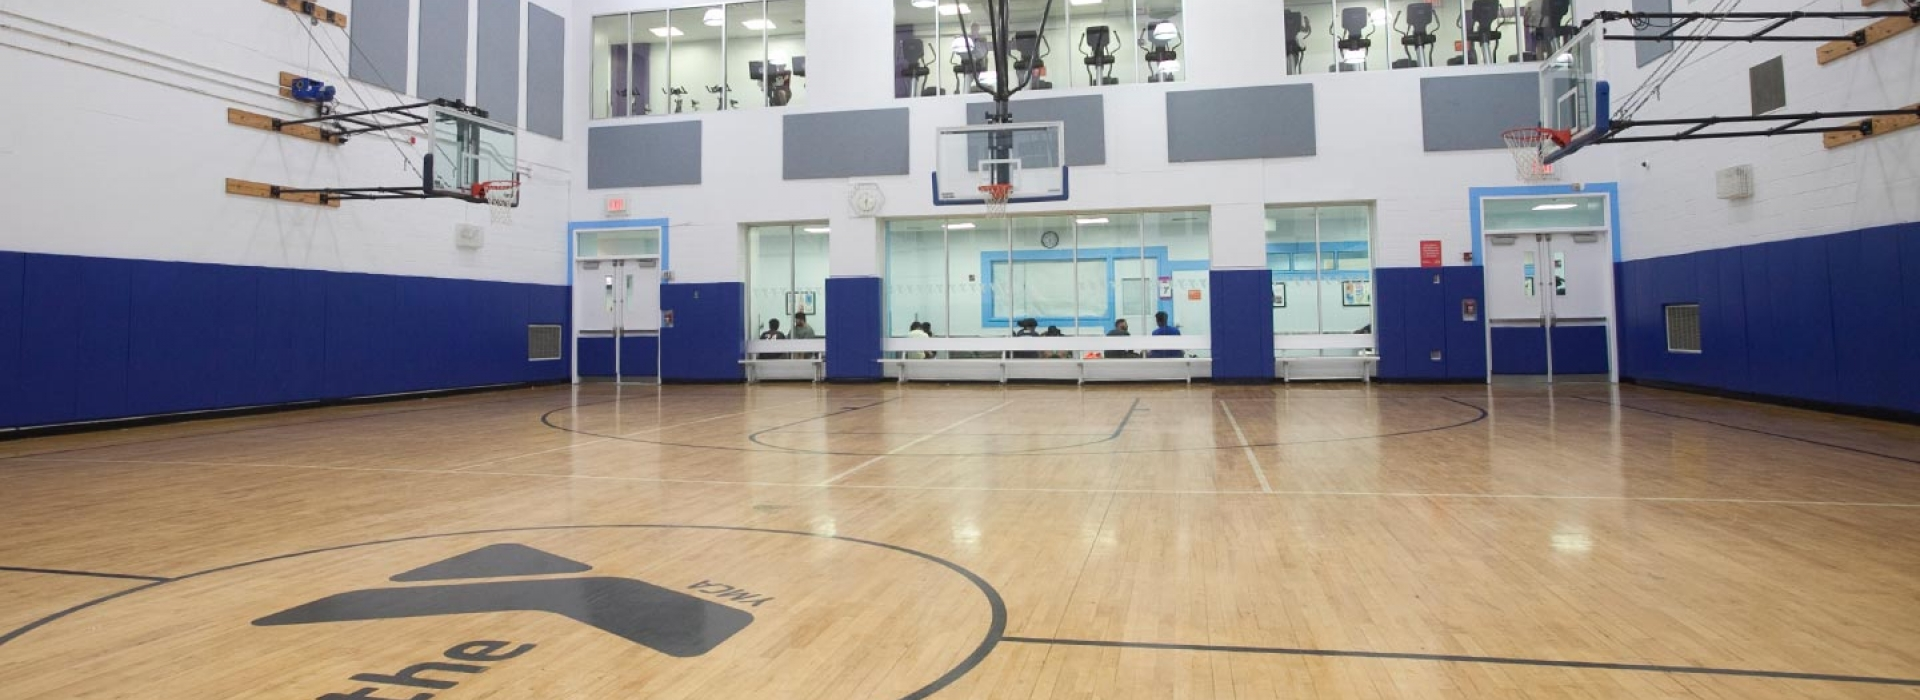 About Dodge Ymca Of Greater New York